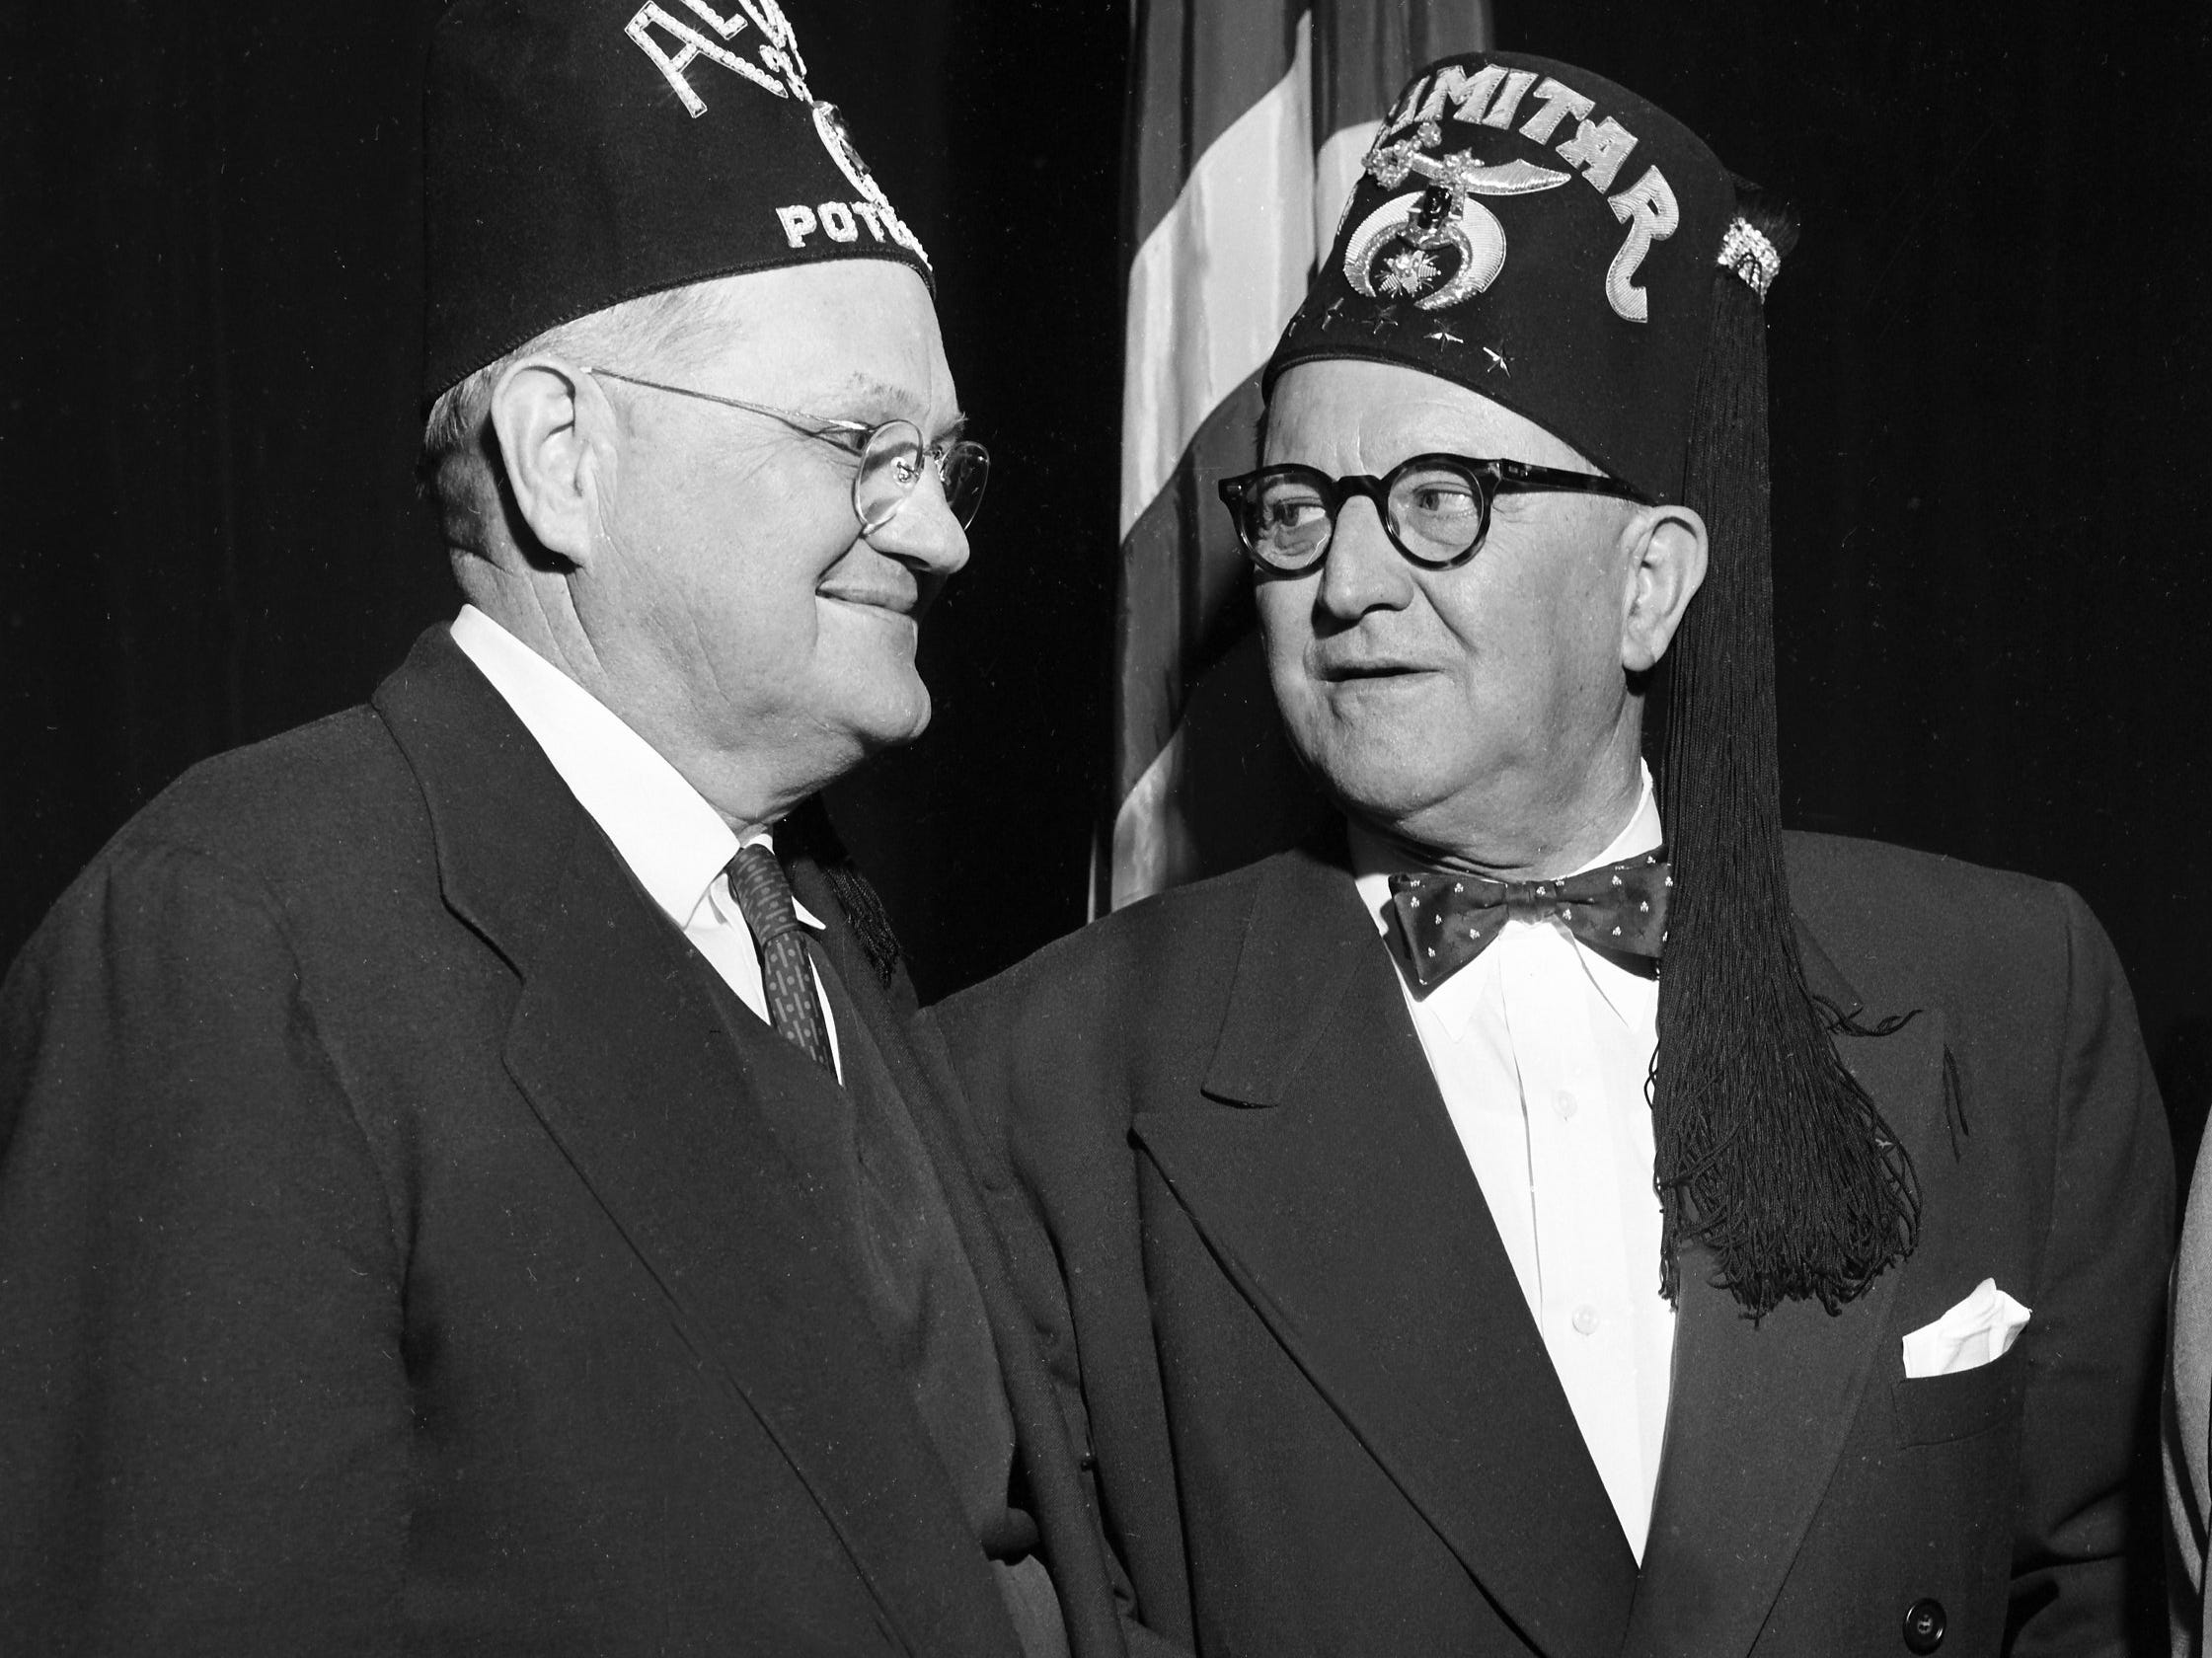 Walter C. Guy (Right) of Little Rock, Imperial Potentate of the Shrine of North America, was welcomed to Memphis in January 1956 by Chalmers Cullins, new potentate of Al Chymia Temple.